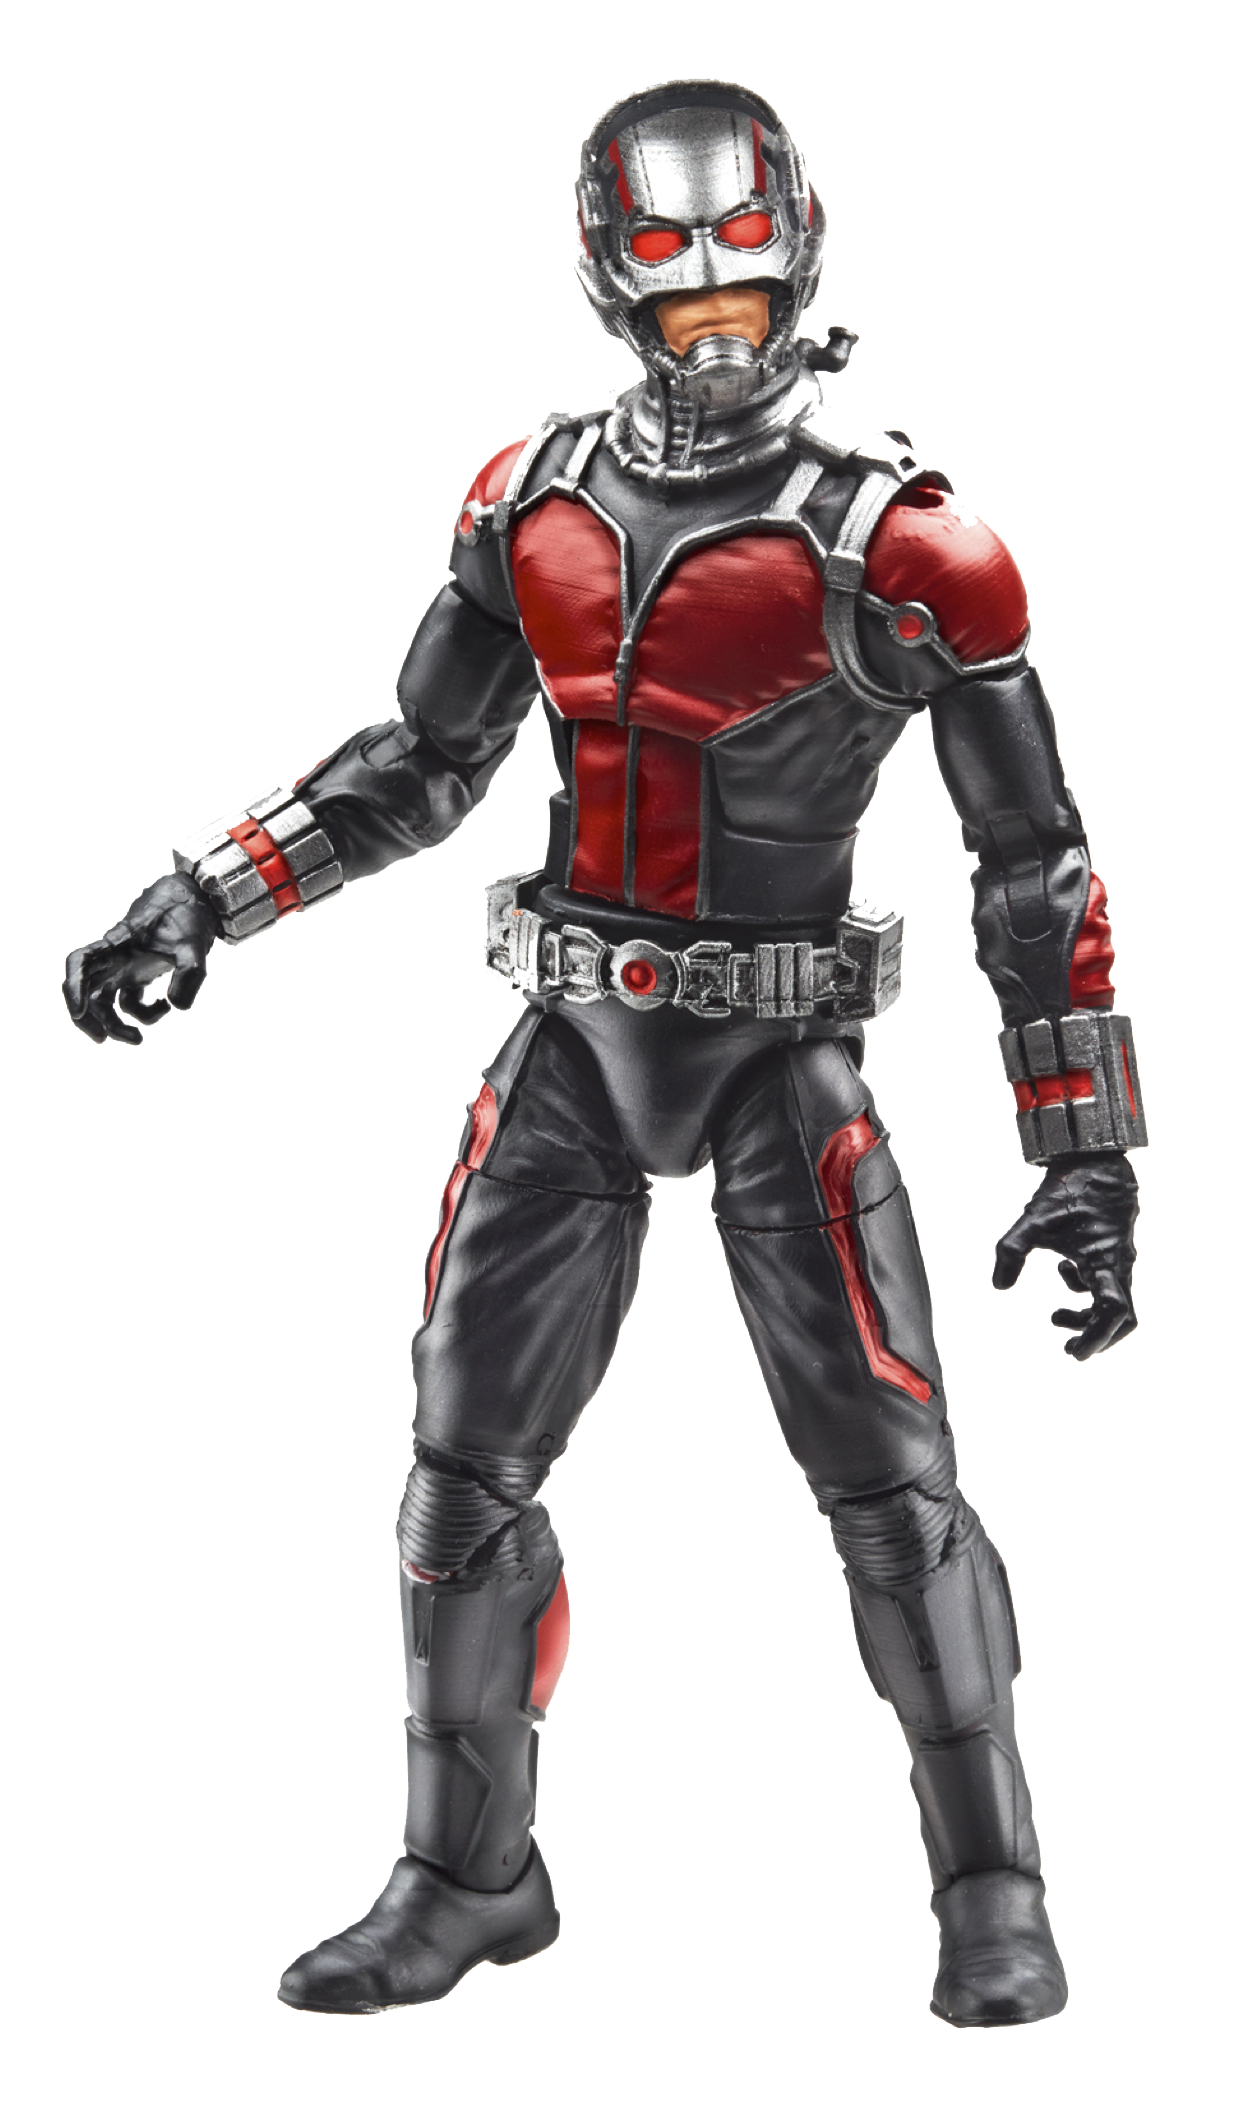 Ant-Man Transparent Background - Antman HD PNG